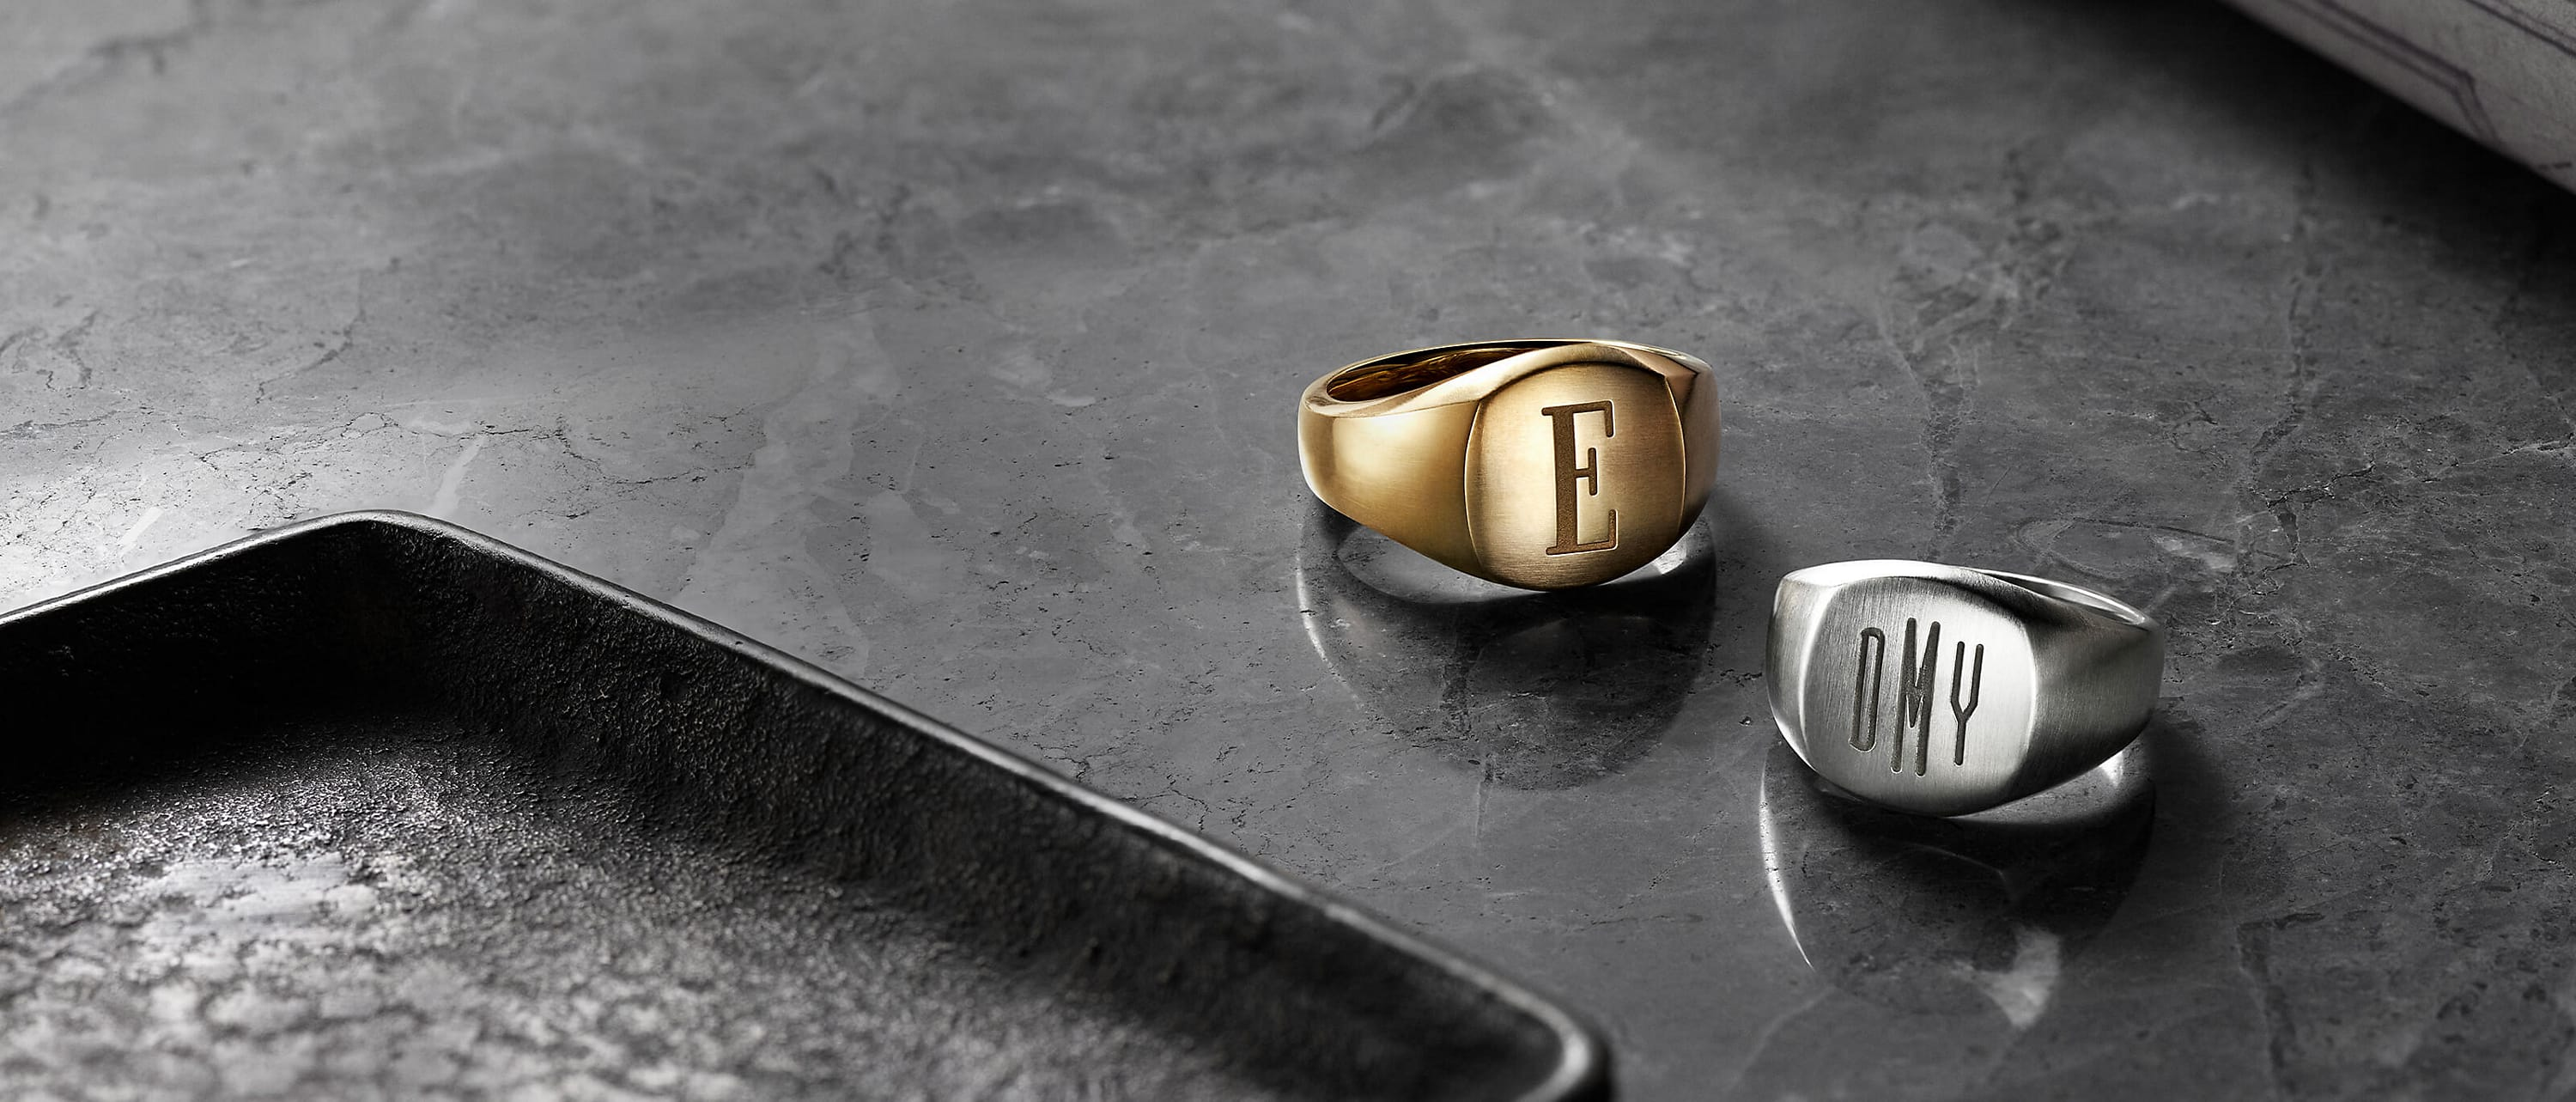 A color photo shows two David Yurman men's signet rings scattered on a dark grey marble surface near a black tray. One ring is crafted from 18K yellow gold and engraved with the letter E. The other ring is crafted from sterling silver and engraved with a DMY monogram.